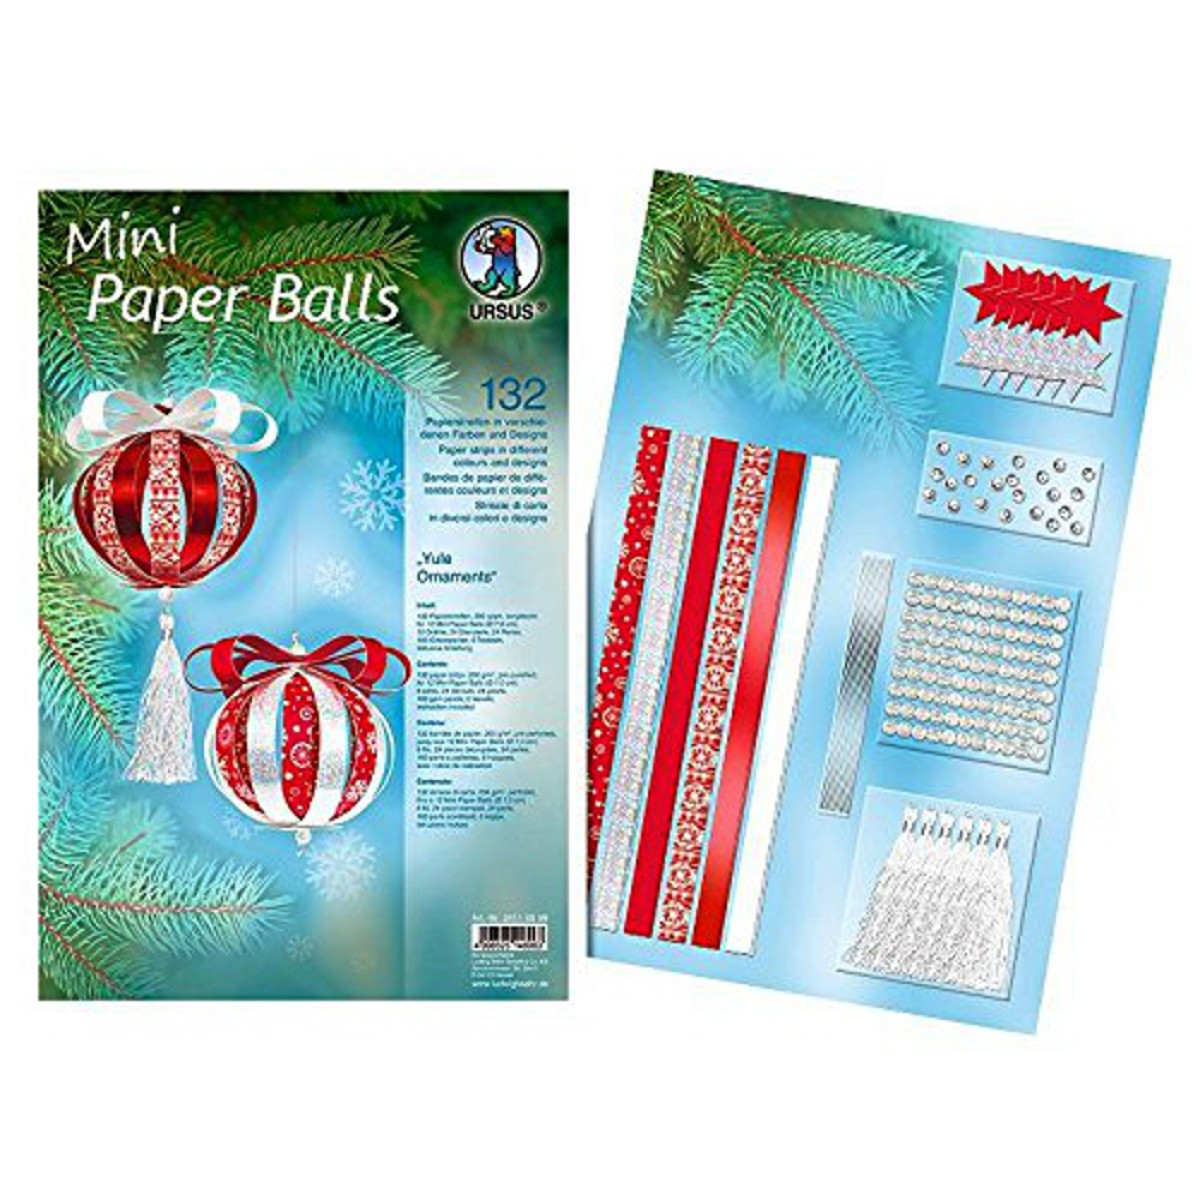 "Mini Paper Balls ""Yule Ornaments"""